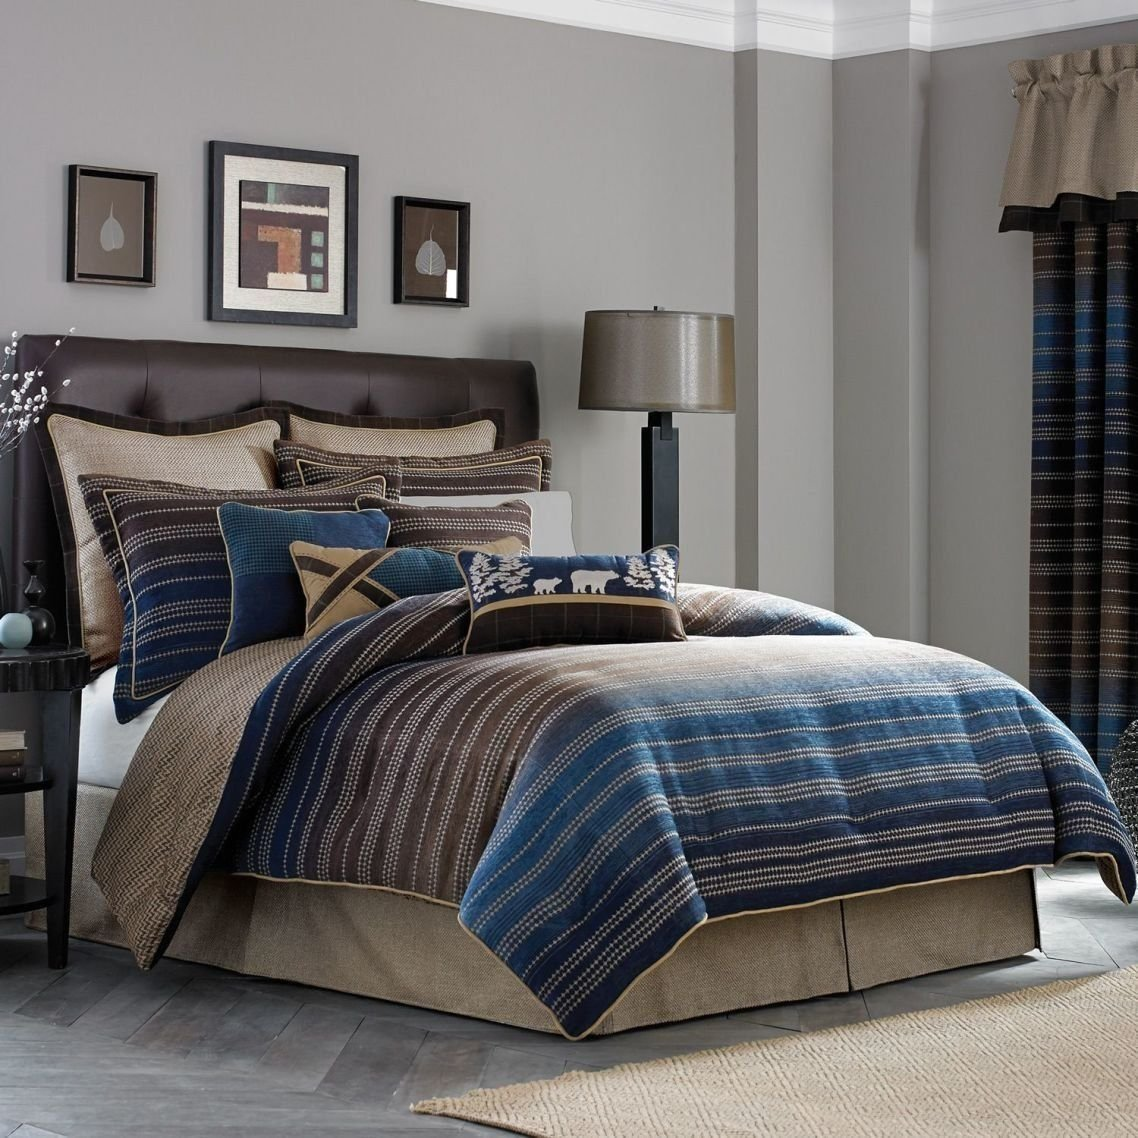 Best Cool Good Masculine Bedding Sets 21 About Remodel Small With Pictures